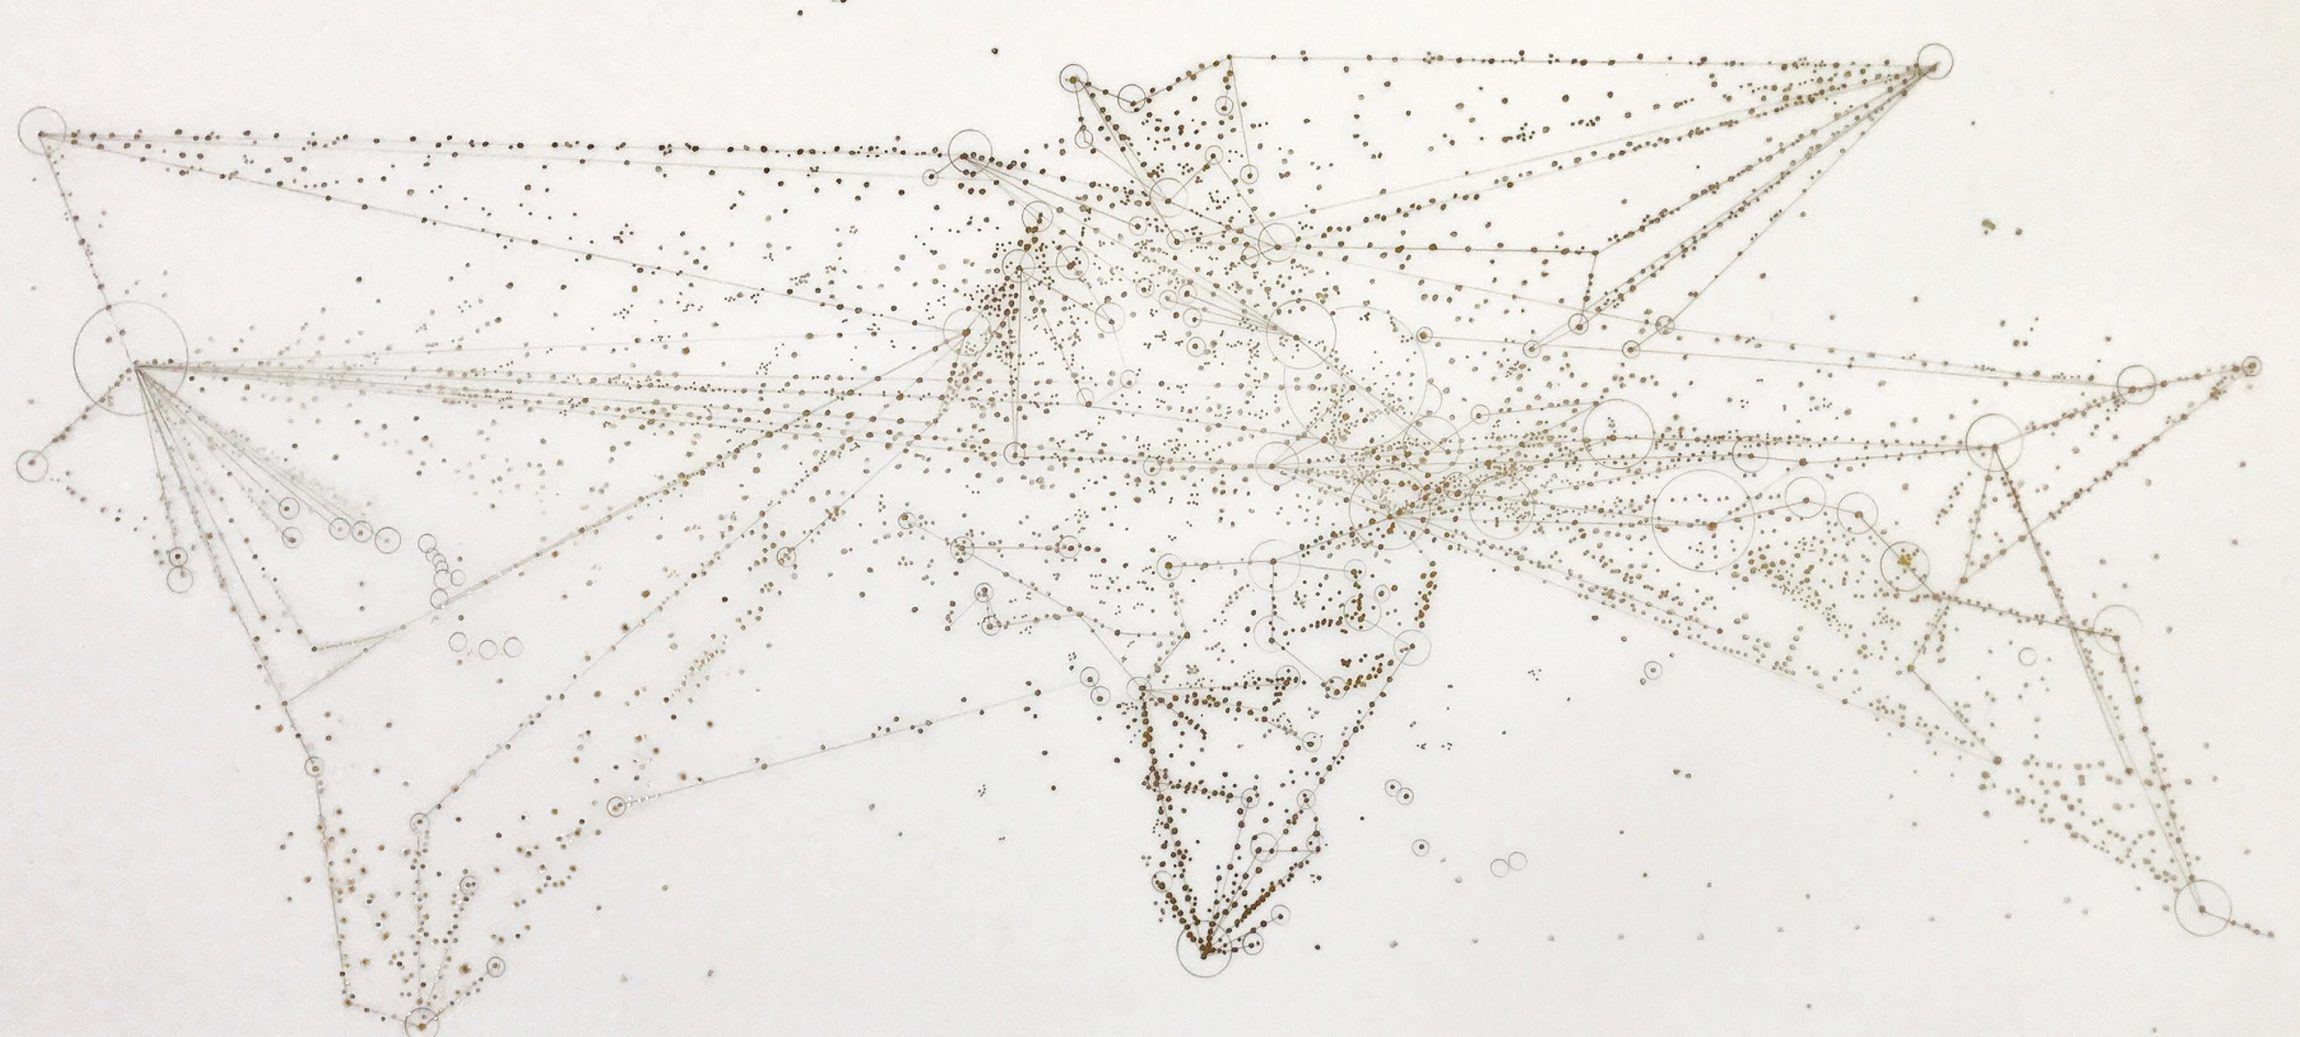 'Making Migration Visible: Traces, Tracks & Pathways' image